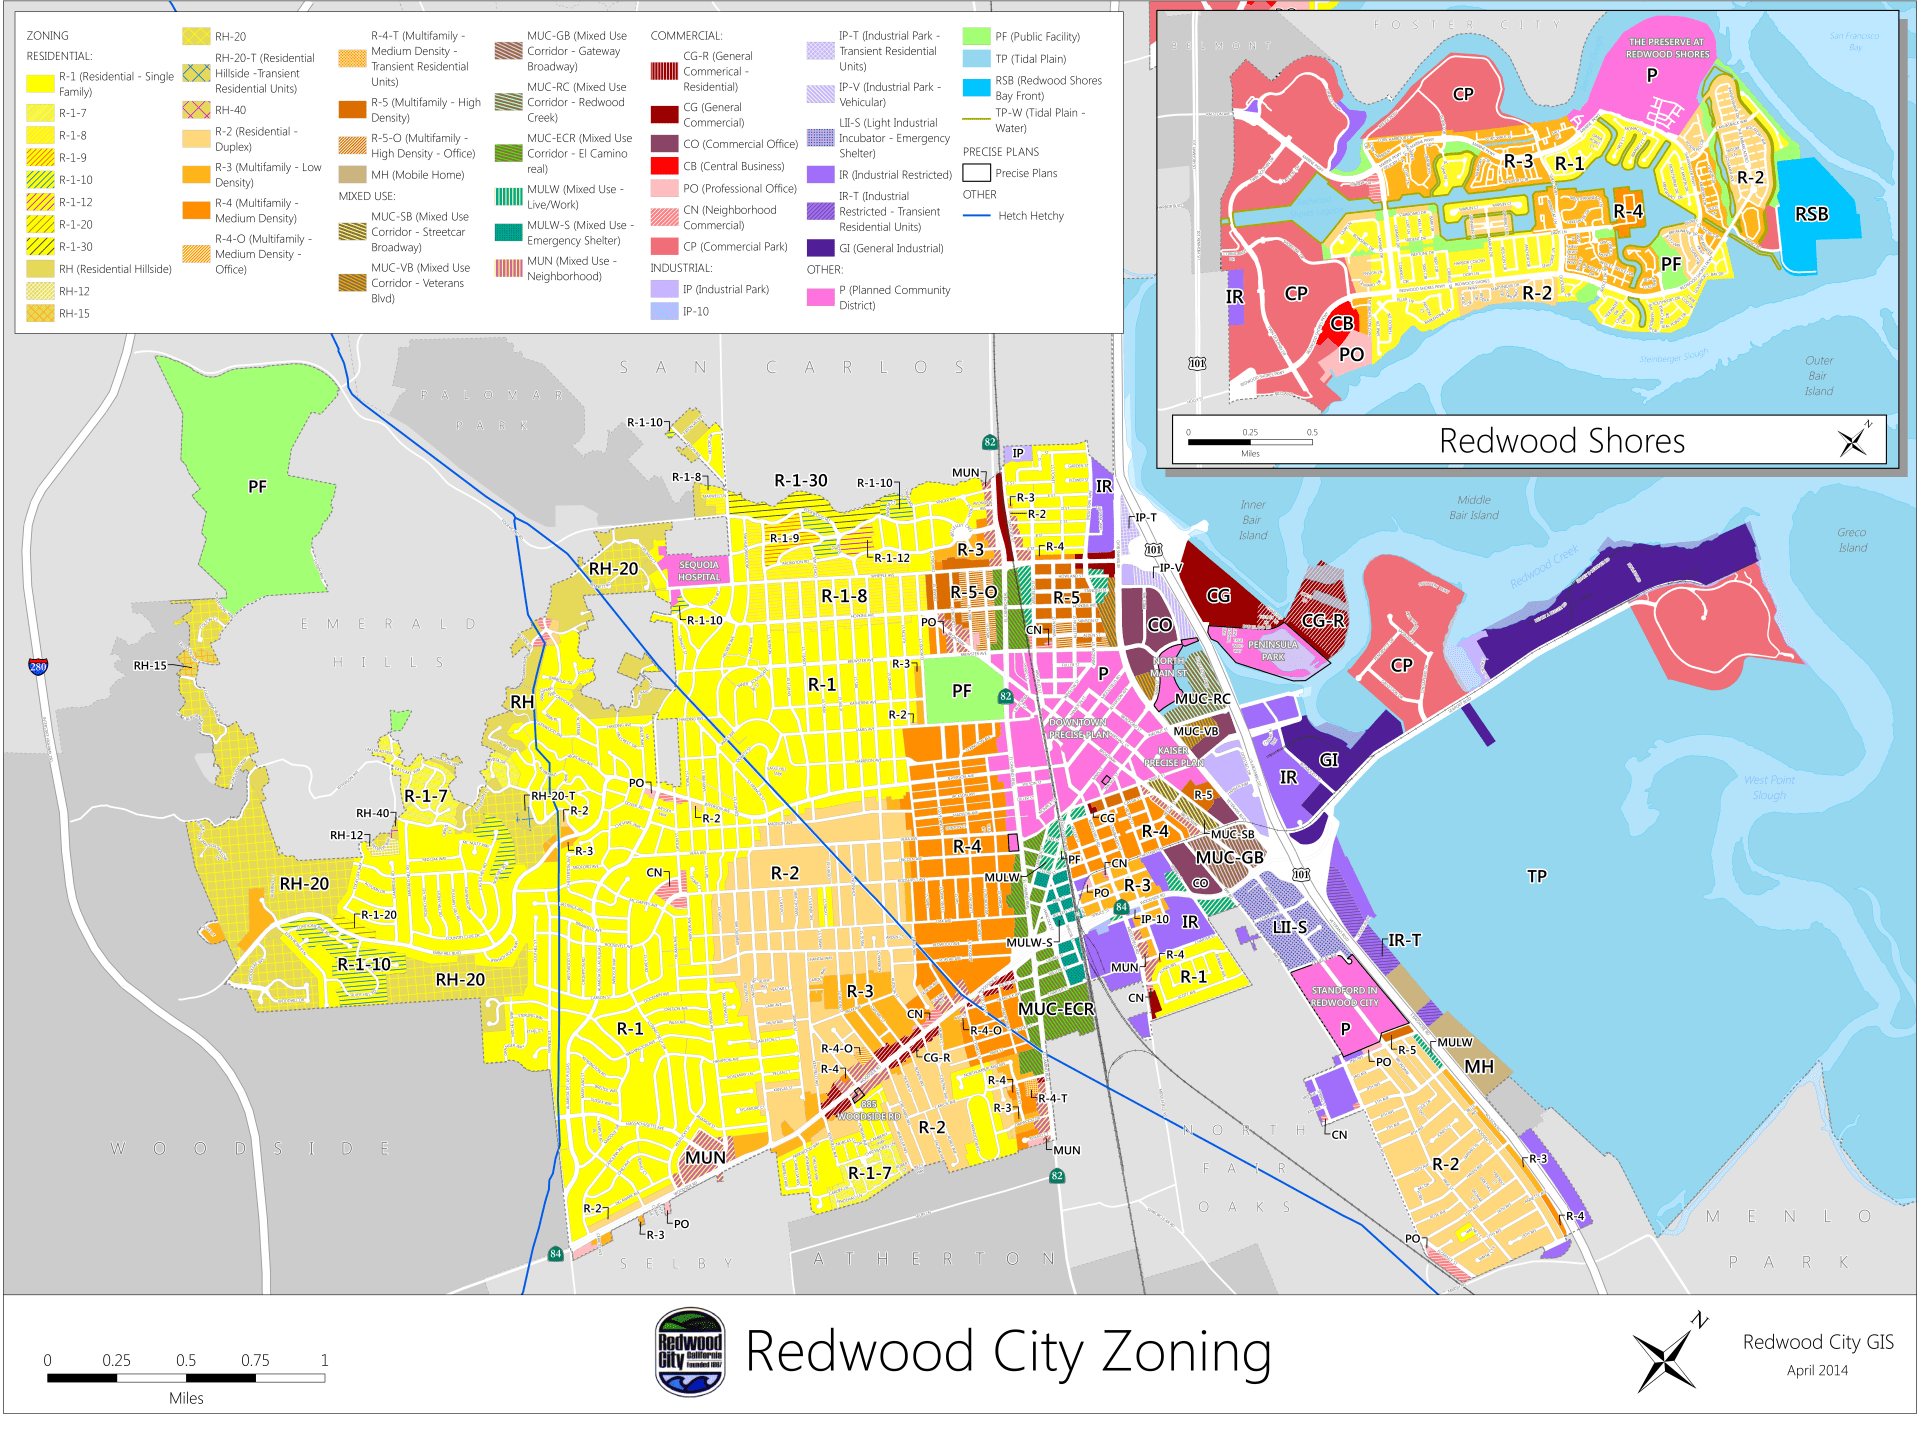 Redwood City Master Plan General Land Use Map